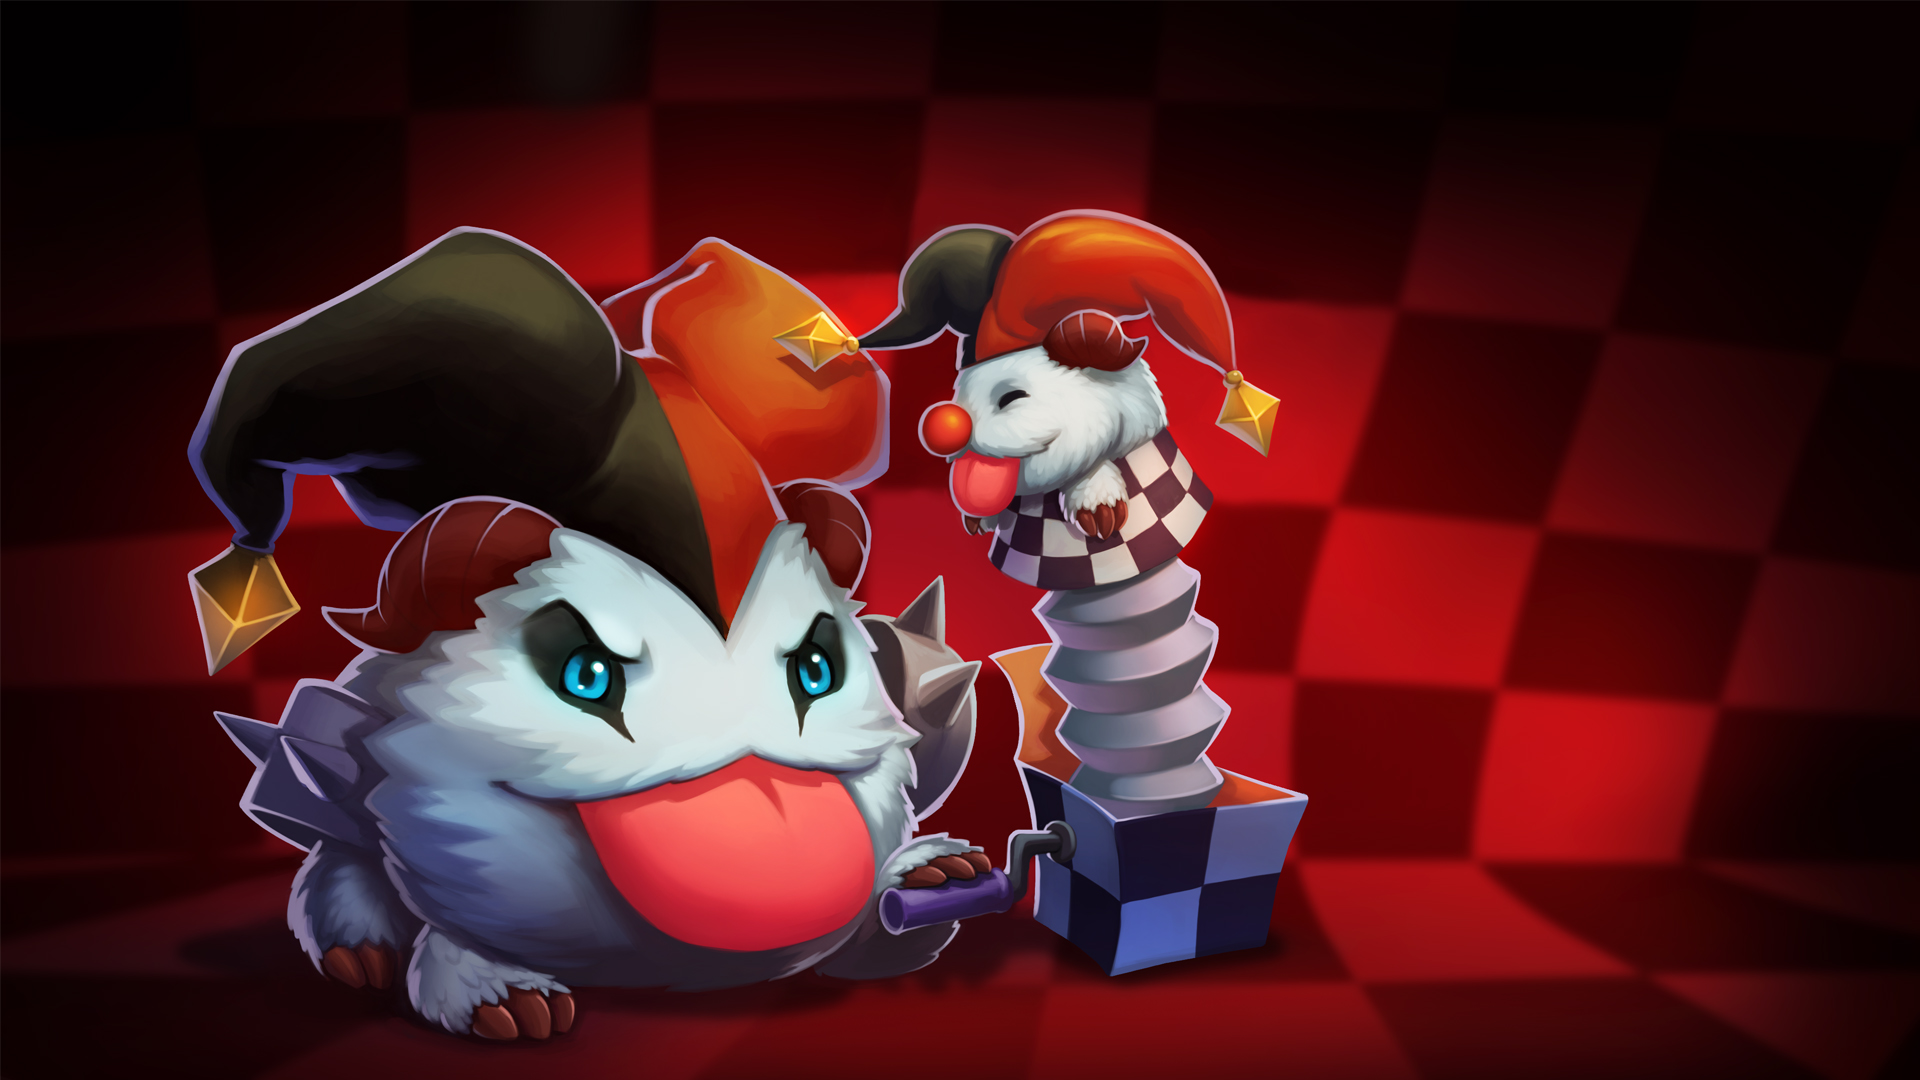 Shaco Poro wallpaper